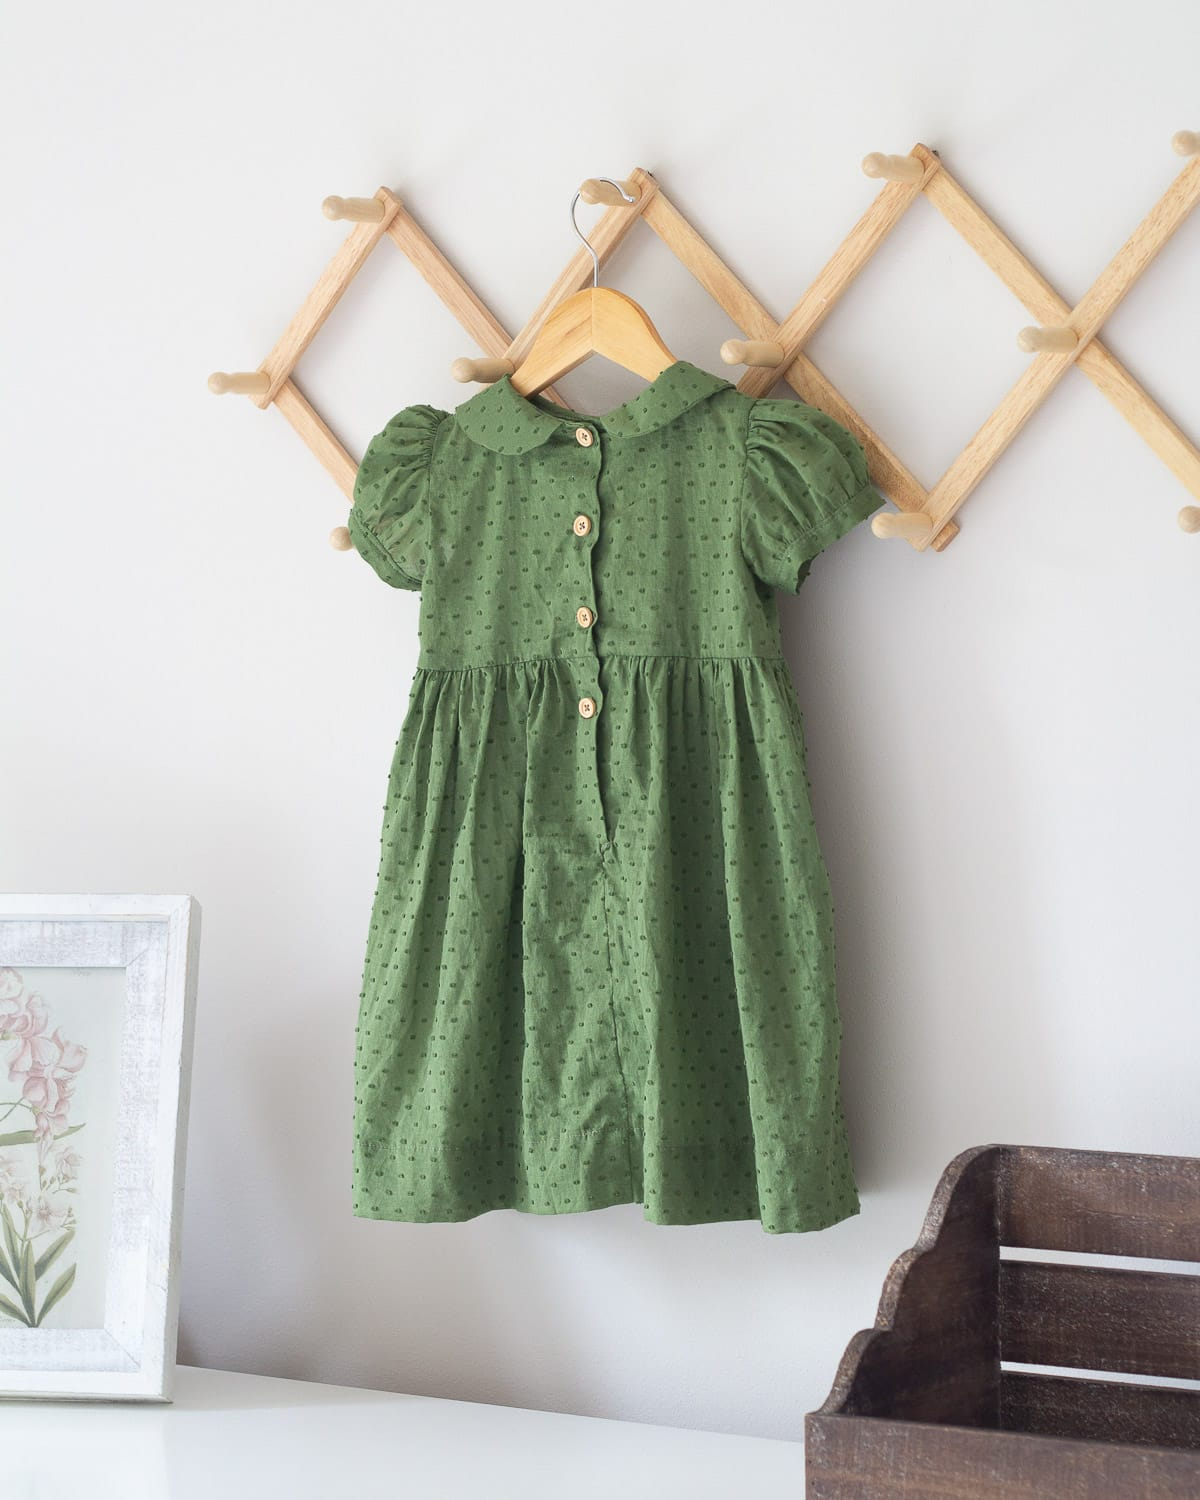 The back of a green toddler dress with wooden buttons.